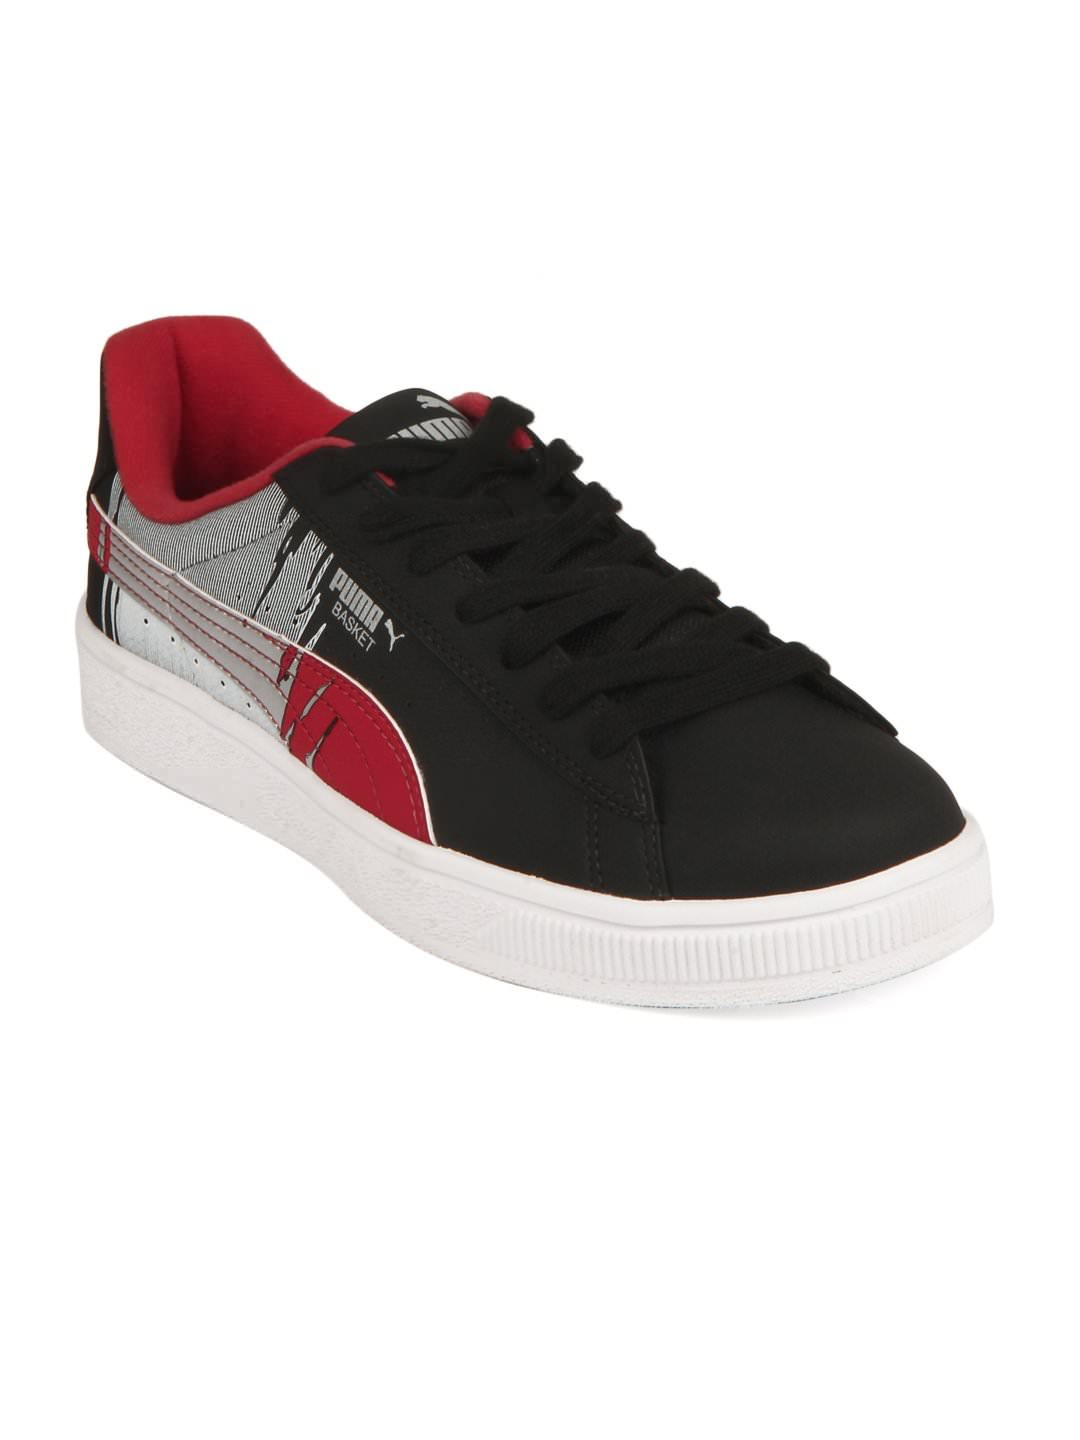 Puma Sports Shoes at Rs.1799